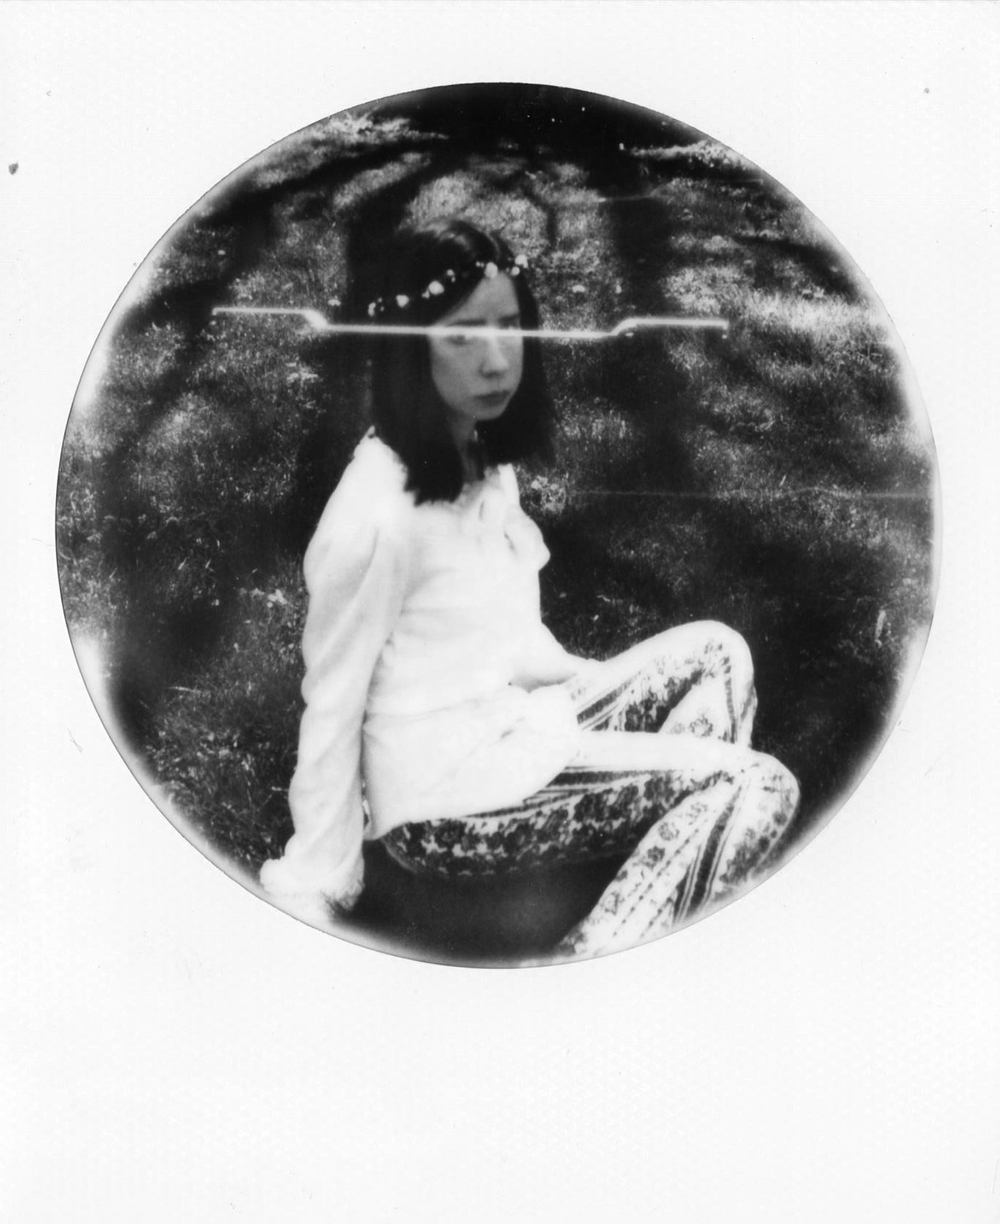 Abigail Crone | Recent Memory II | SX70 | Expired Impossible Project Black and White Round Frame